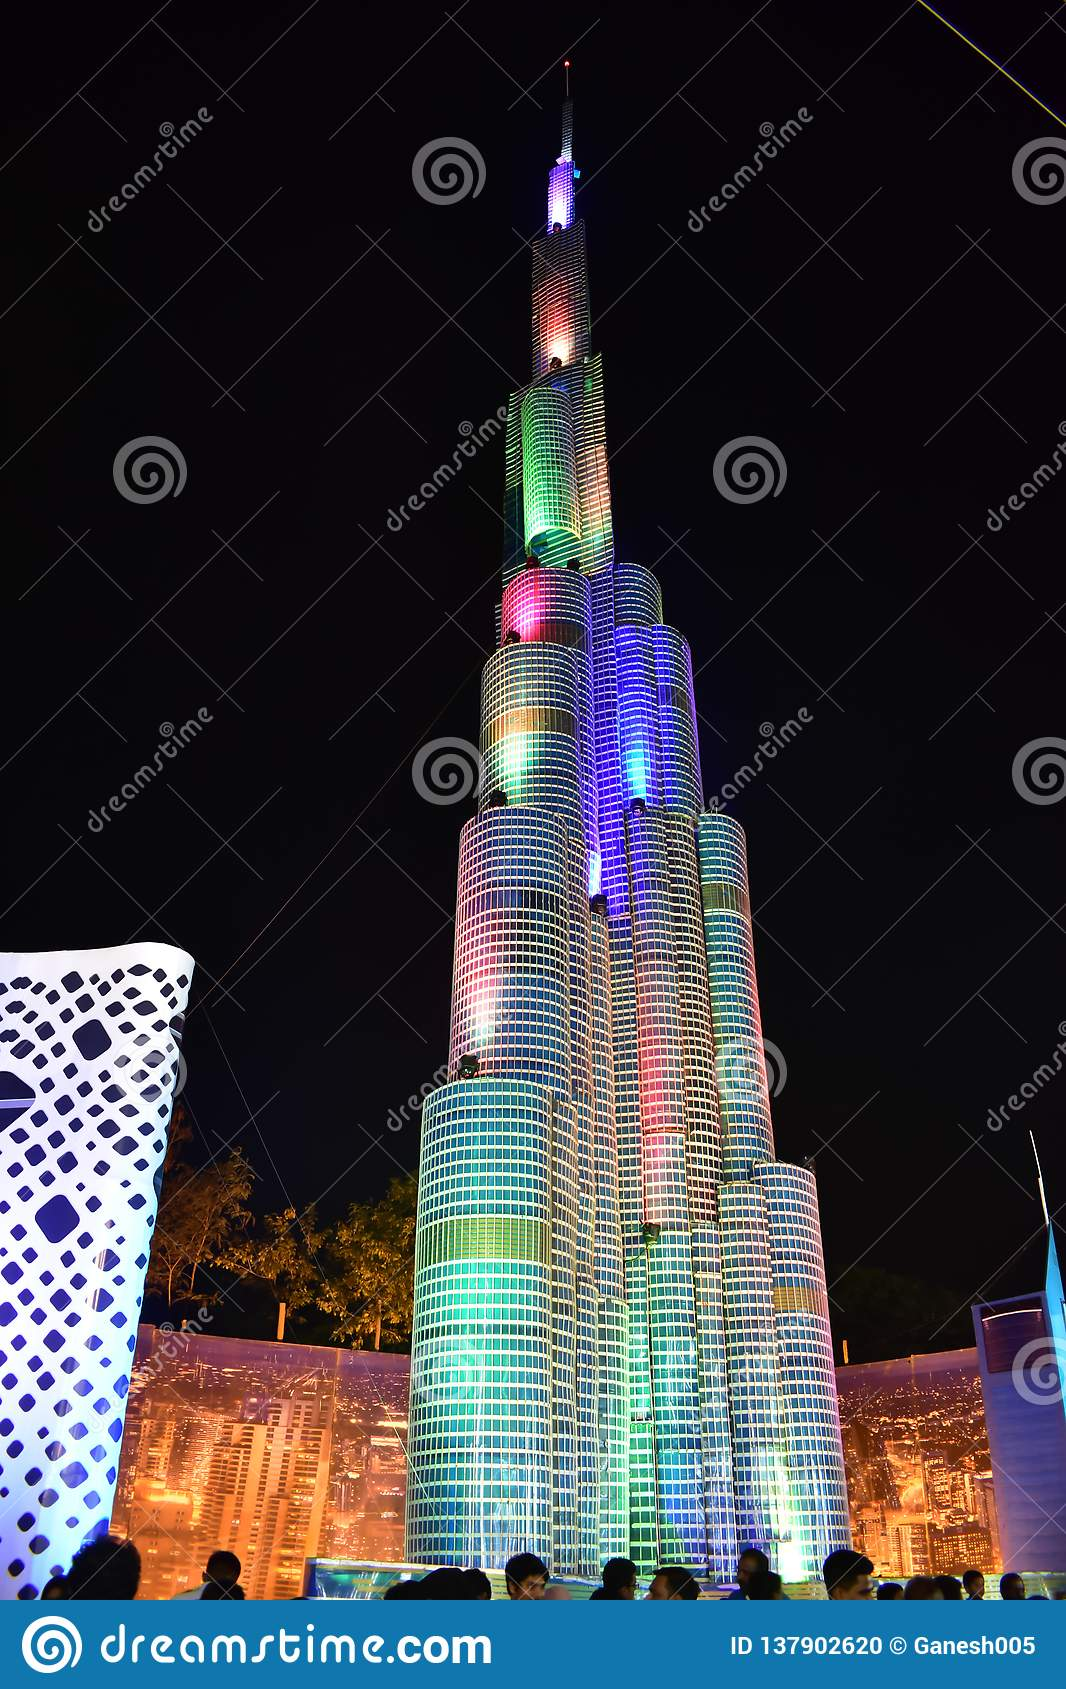 Chennai, Tamilnadu, India - January 20, 2019 : Burj Khalifa